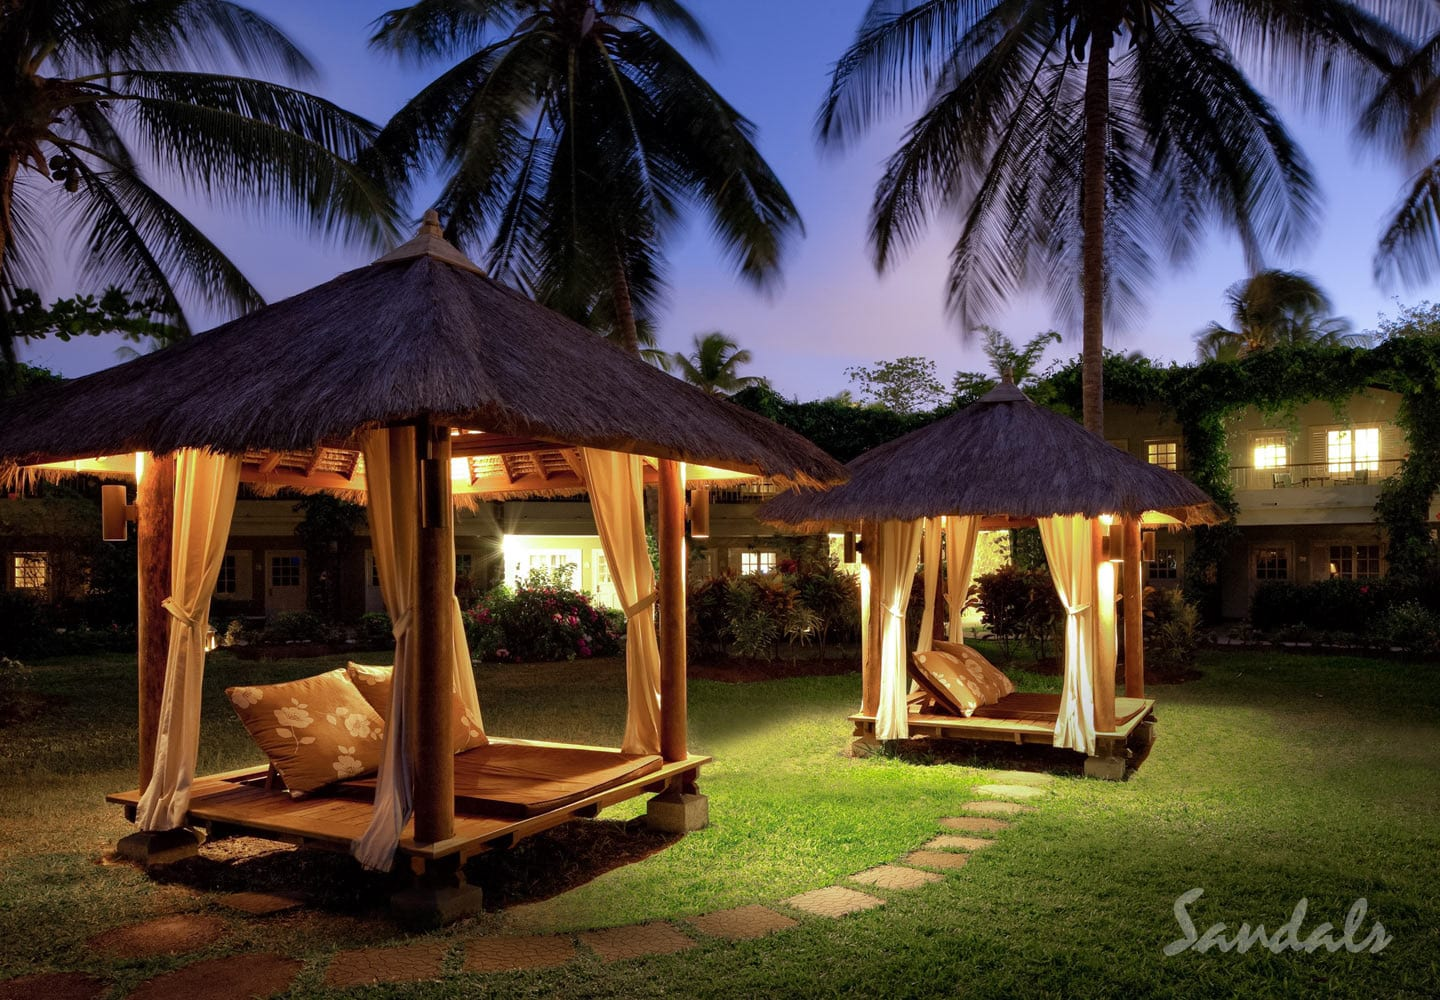 outside loungers in the night sky at the Sandals Halcyon Beach Resort in St Lucia, one of the all inclusive resorts adults only